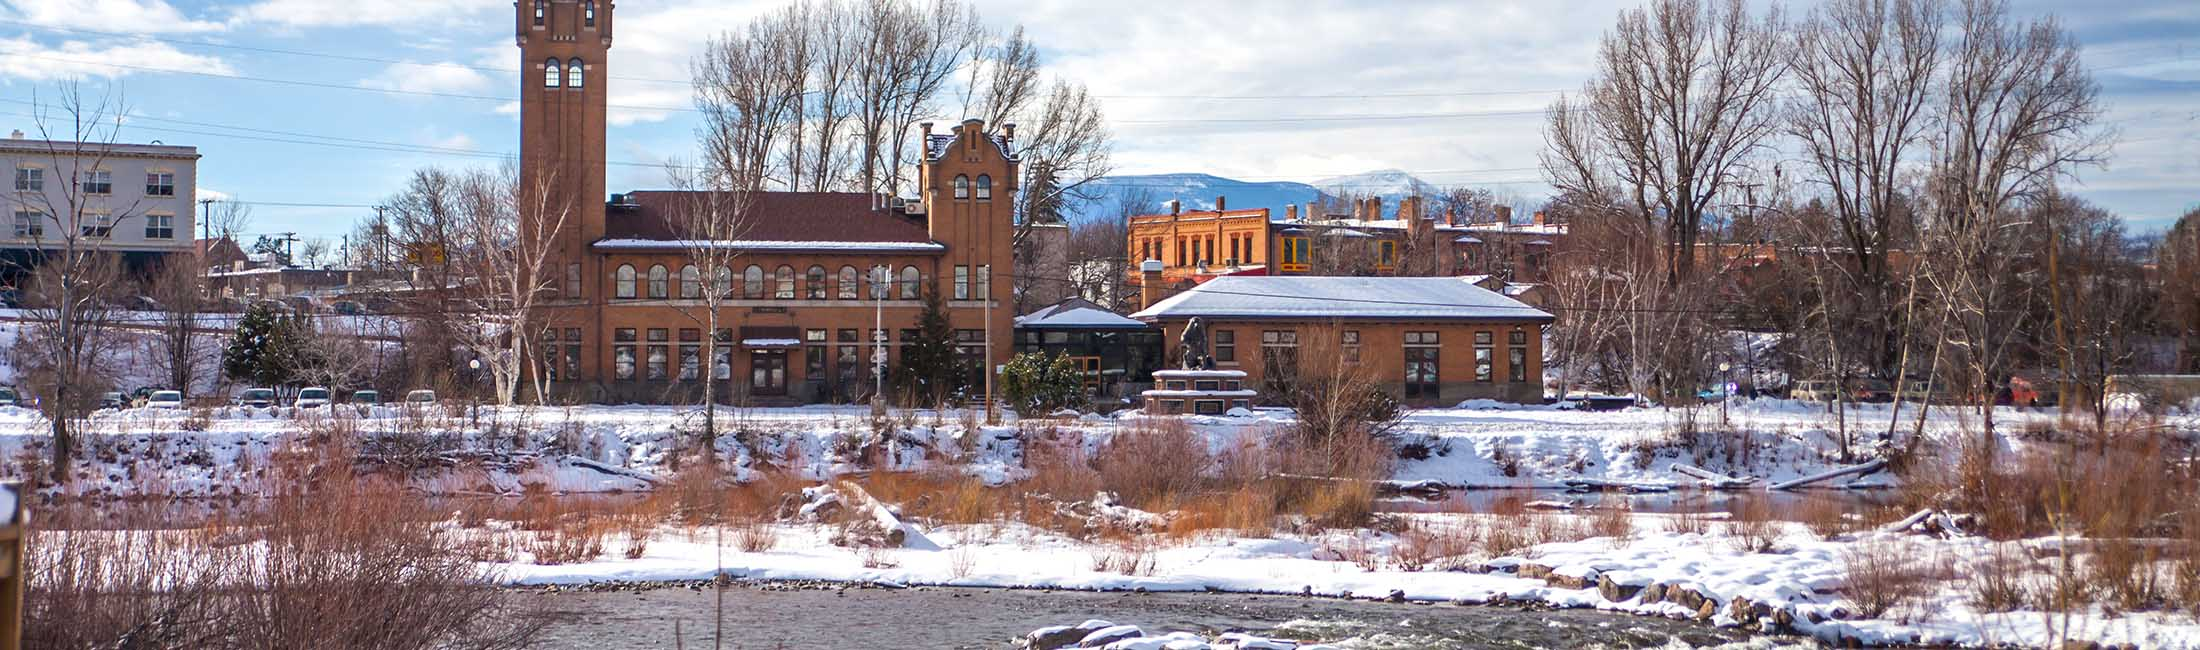 Your Monthly Guide to Missoula: January 2021